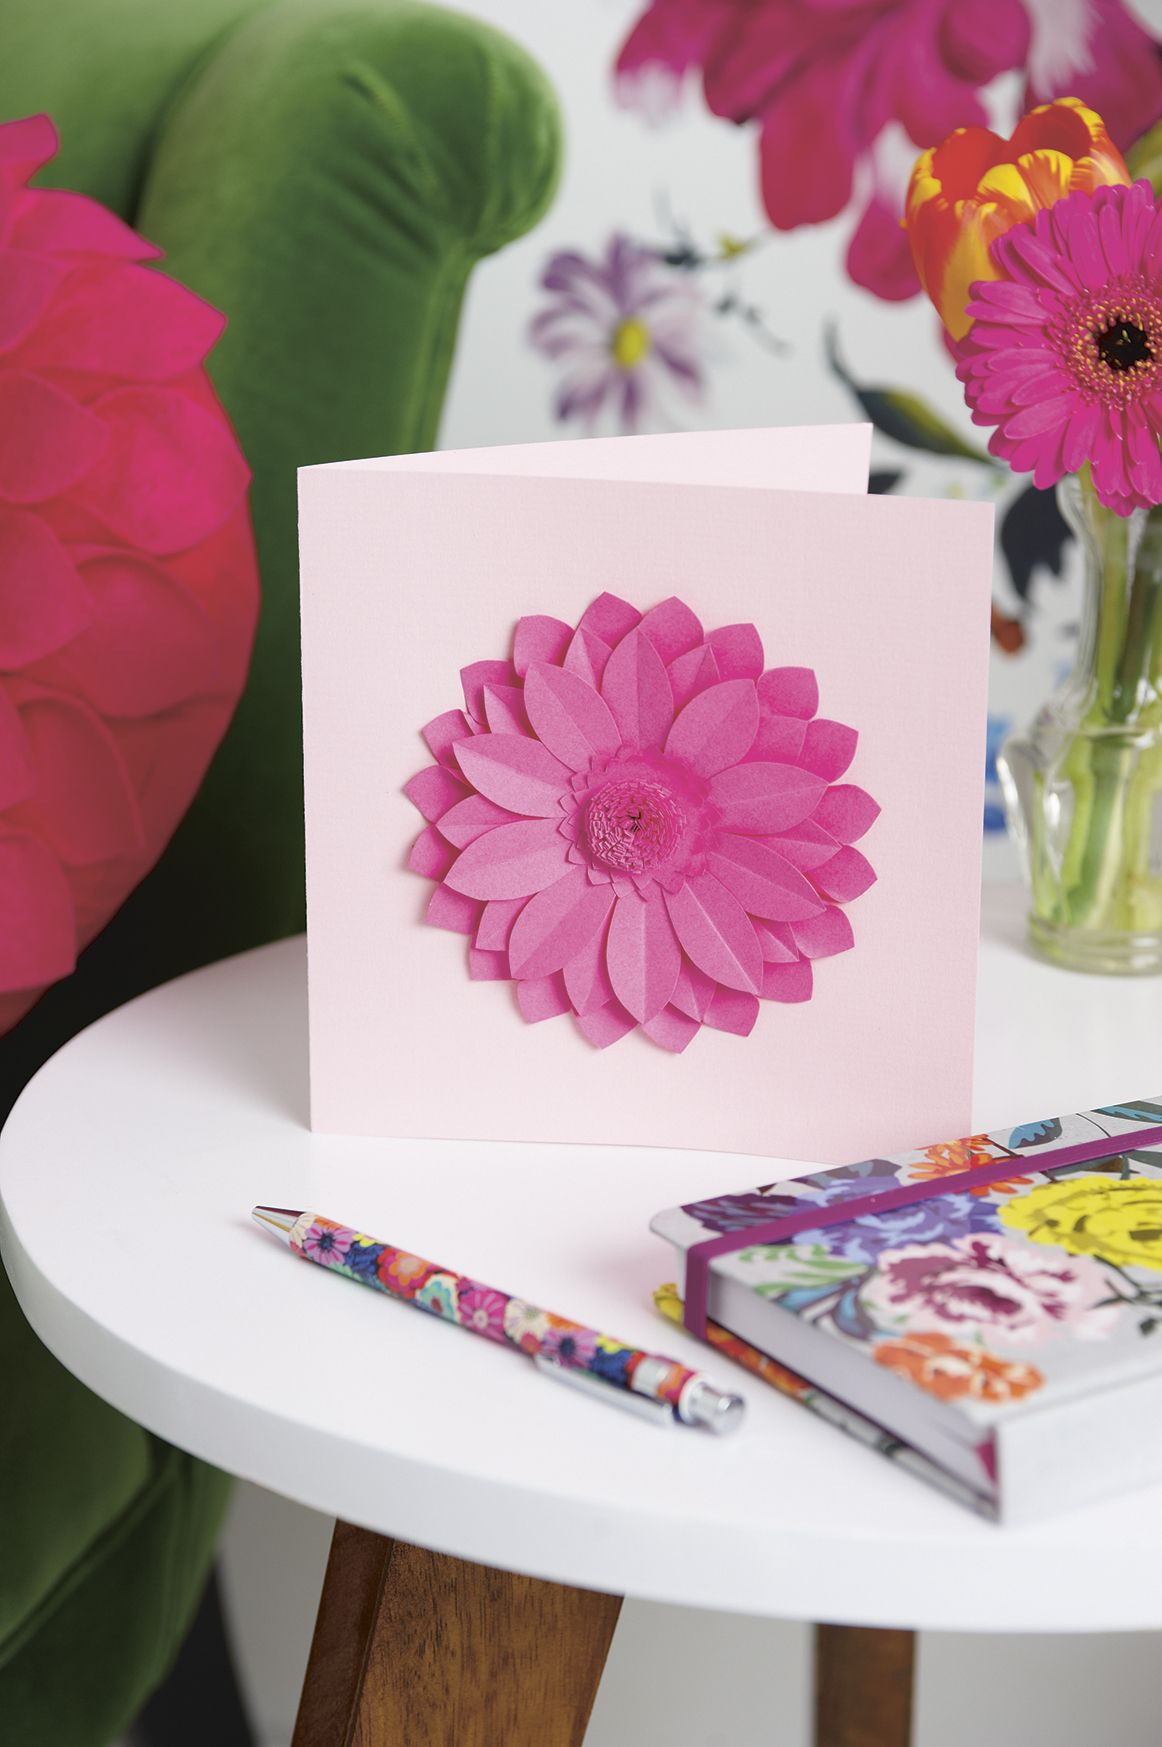 Make a beautiful paper flower card manualidades pinterest make a beautiful paper flower card izmirmasajfo